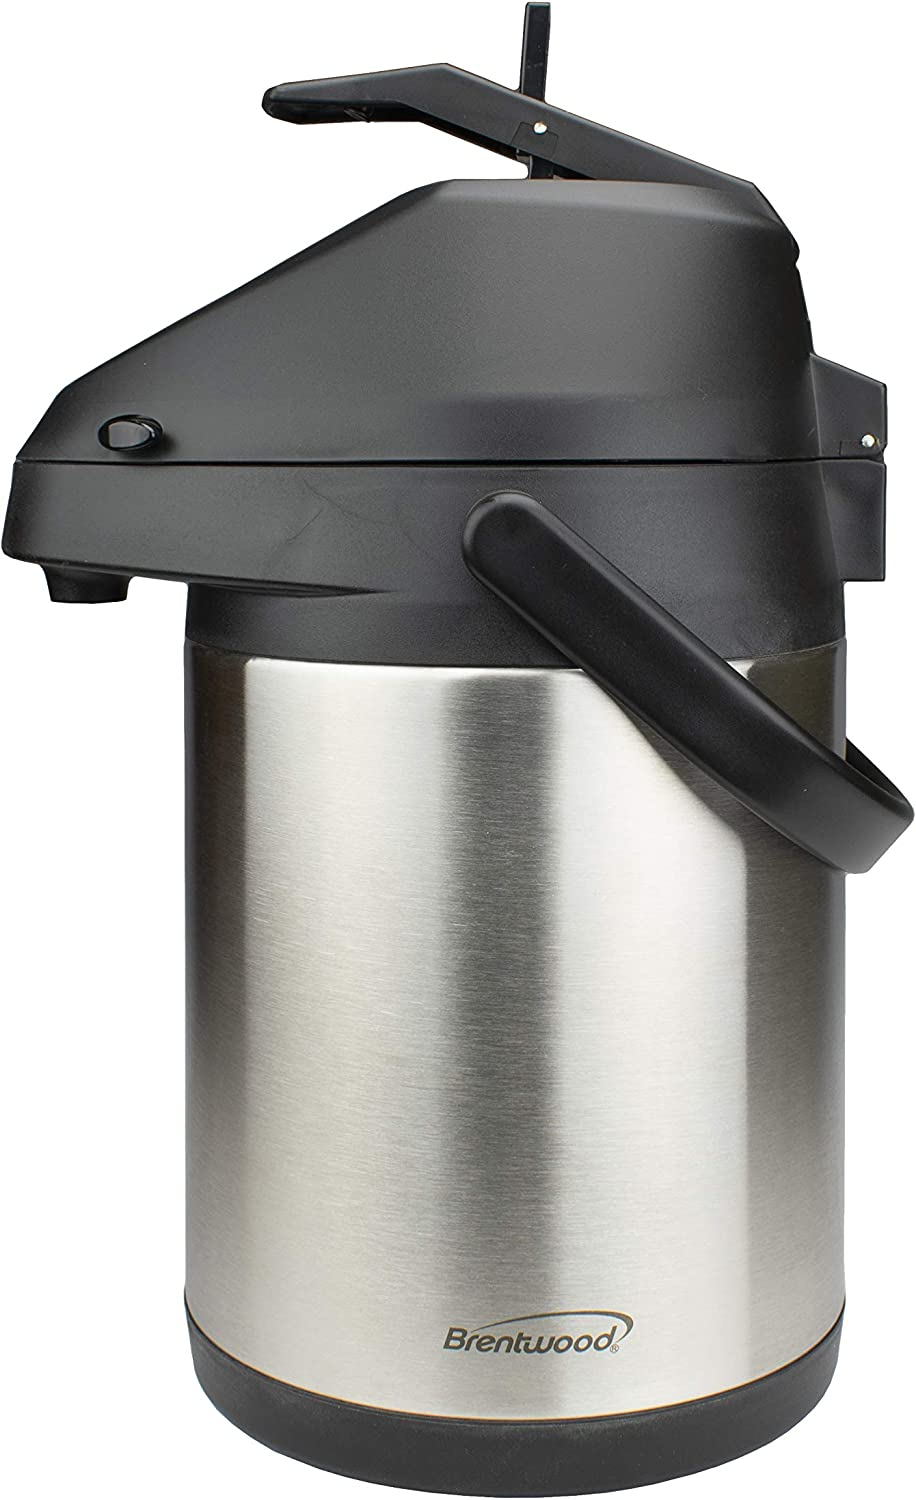 Brentwood CTSA-2500 2.5-Liter Excellence Special price for a limited time Airpot Hot Cold Drink Dispenser